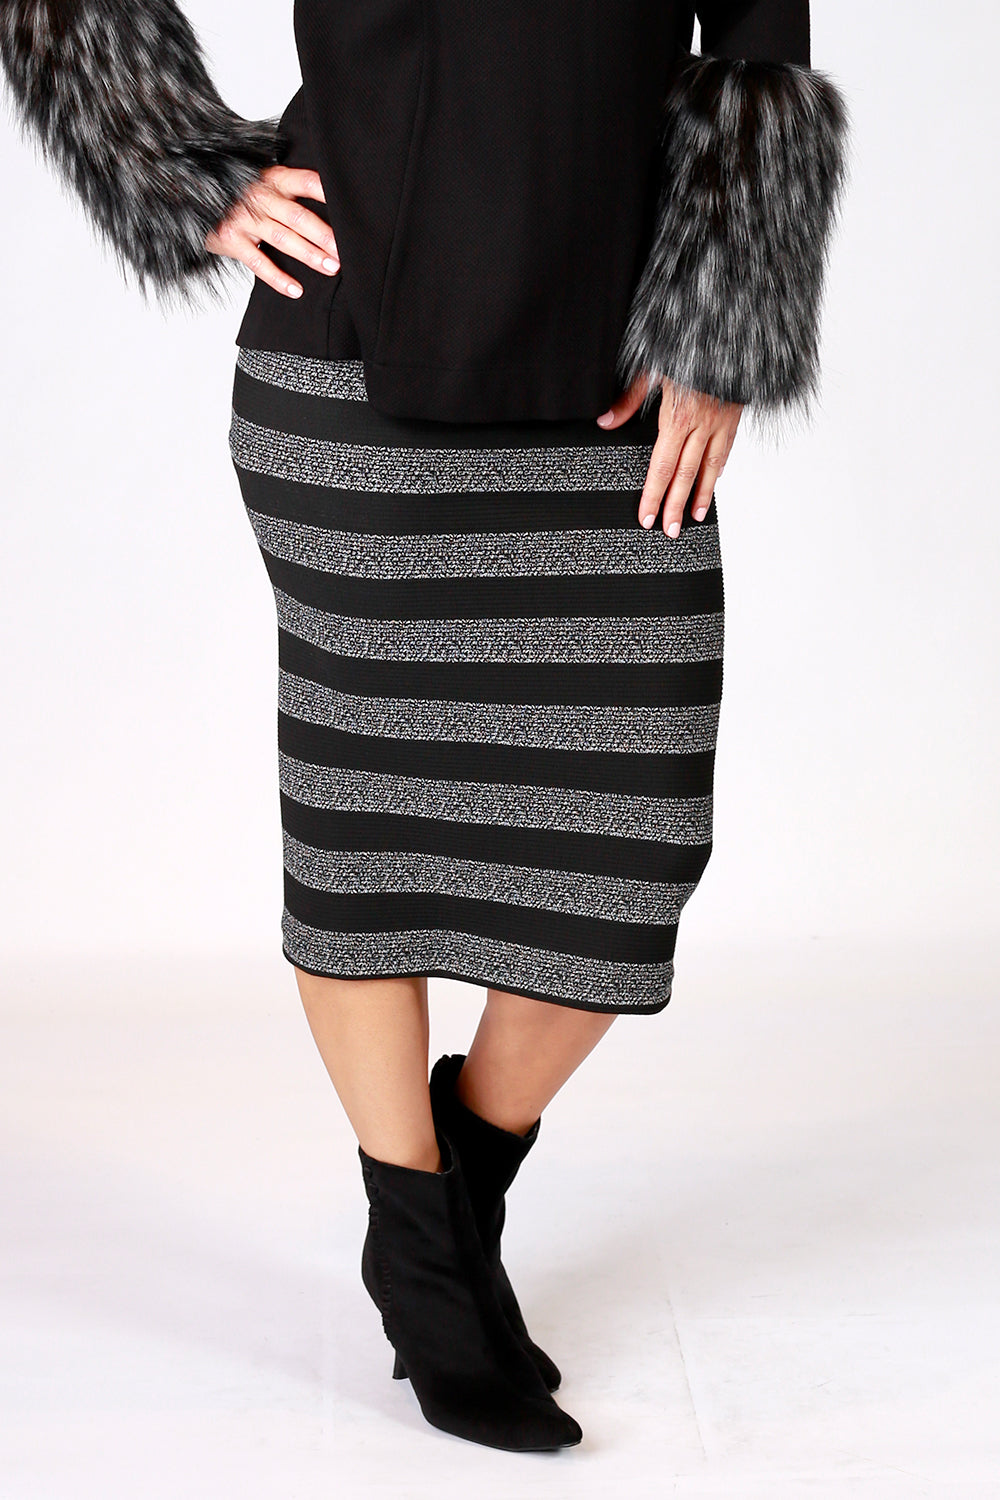 Ice Queen Skirt | Winter Wonderland AW20 | Annah Stretton | Annah Stretton Fashion | Designer Fashion | Bandage Skirt | Stripe Skirt | Fitted Skirt | Midi Skirt | Annah Stretton NZ | Designer Fashion NZ